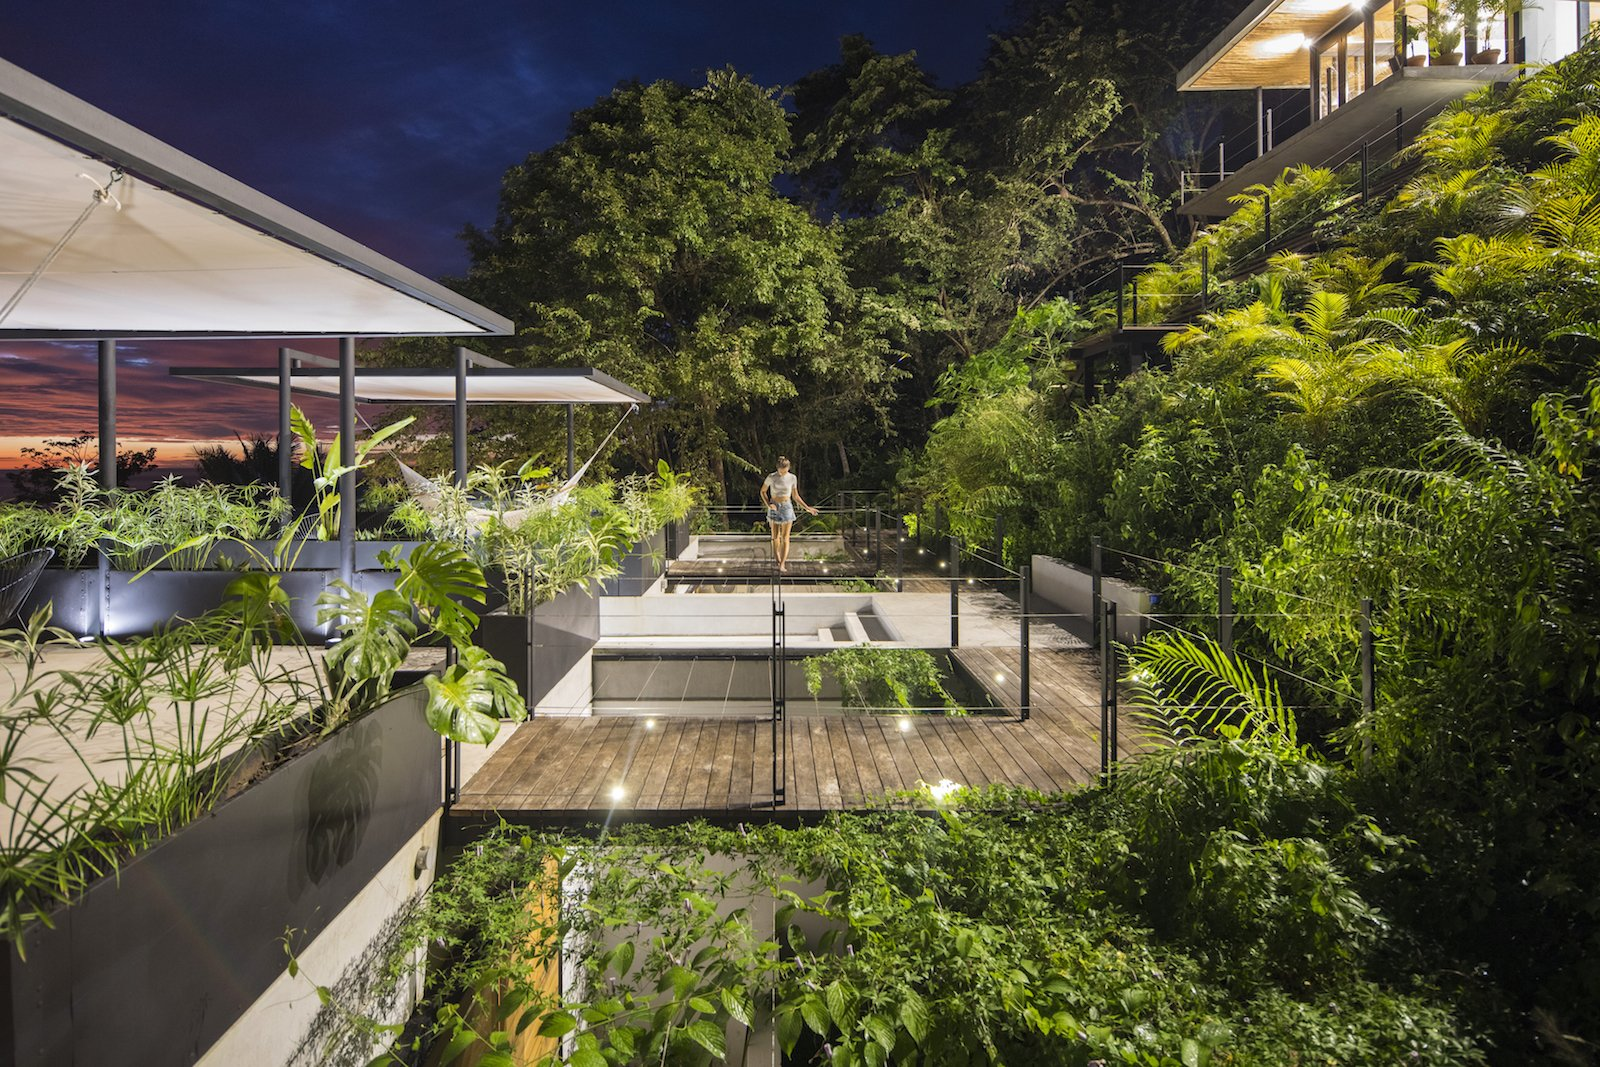 Outdoor, Shrubs, Slope, Small Patio, Porch, Deck, Trees, Wire Fences, Wall, Wood Patio, Porch, Deck, and Grass Locally sourced materials are used throughout the project.  Photo 8 of 11 in Revive Your Mind at This Adults–Only Boutique Hotel in Costa Rica